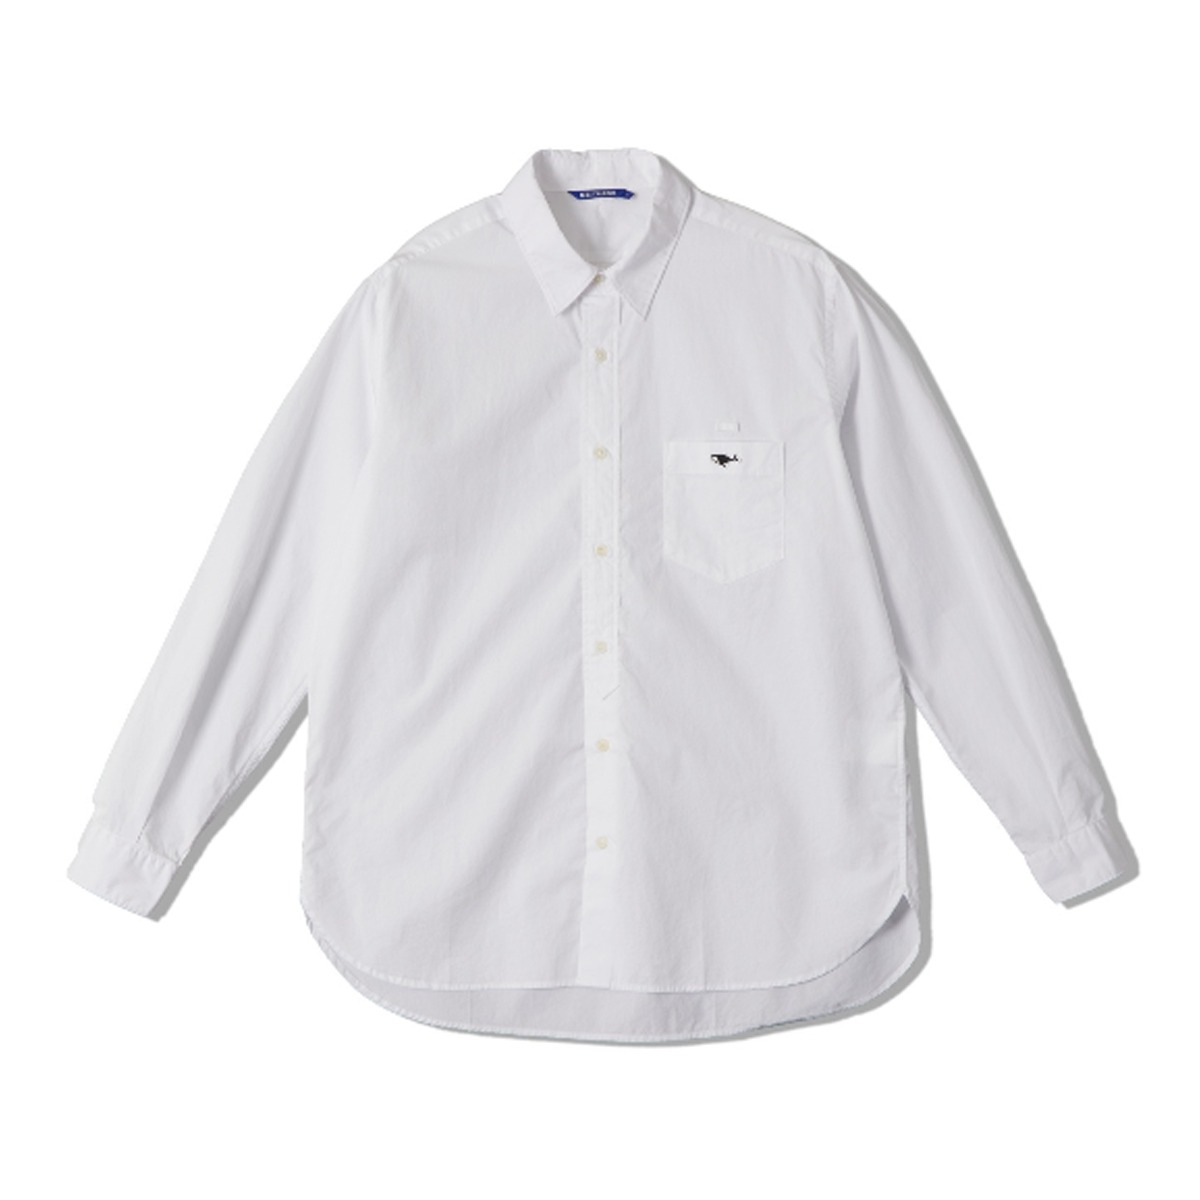 [NEITHERS] S COMFORT SHIRT 'OFF WHITE'